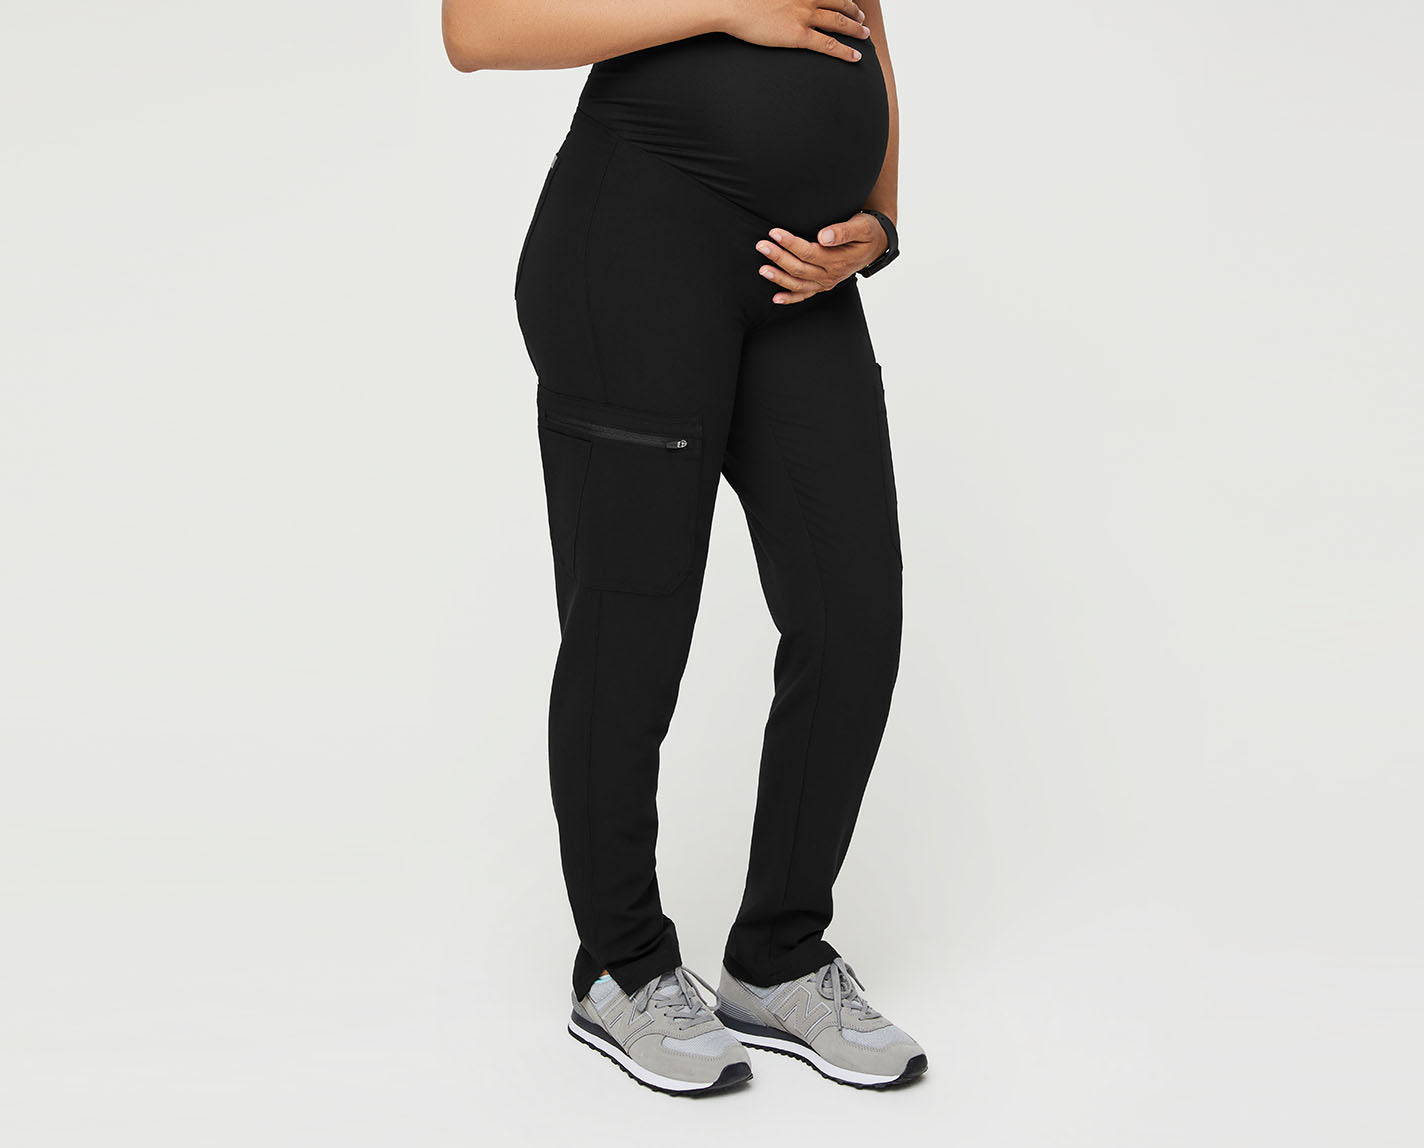 Our most stylish scrub pants — in a version that's just for moms-to-be! The Yola Maternity Scrub Pant is made of our proprietary FIONx fabric and features a tapered, slim fit, multi-tasking pockets and a soft, stretchy waistband for all stages of pregnancy.